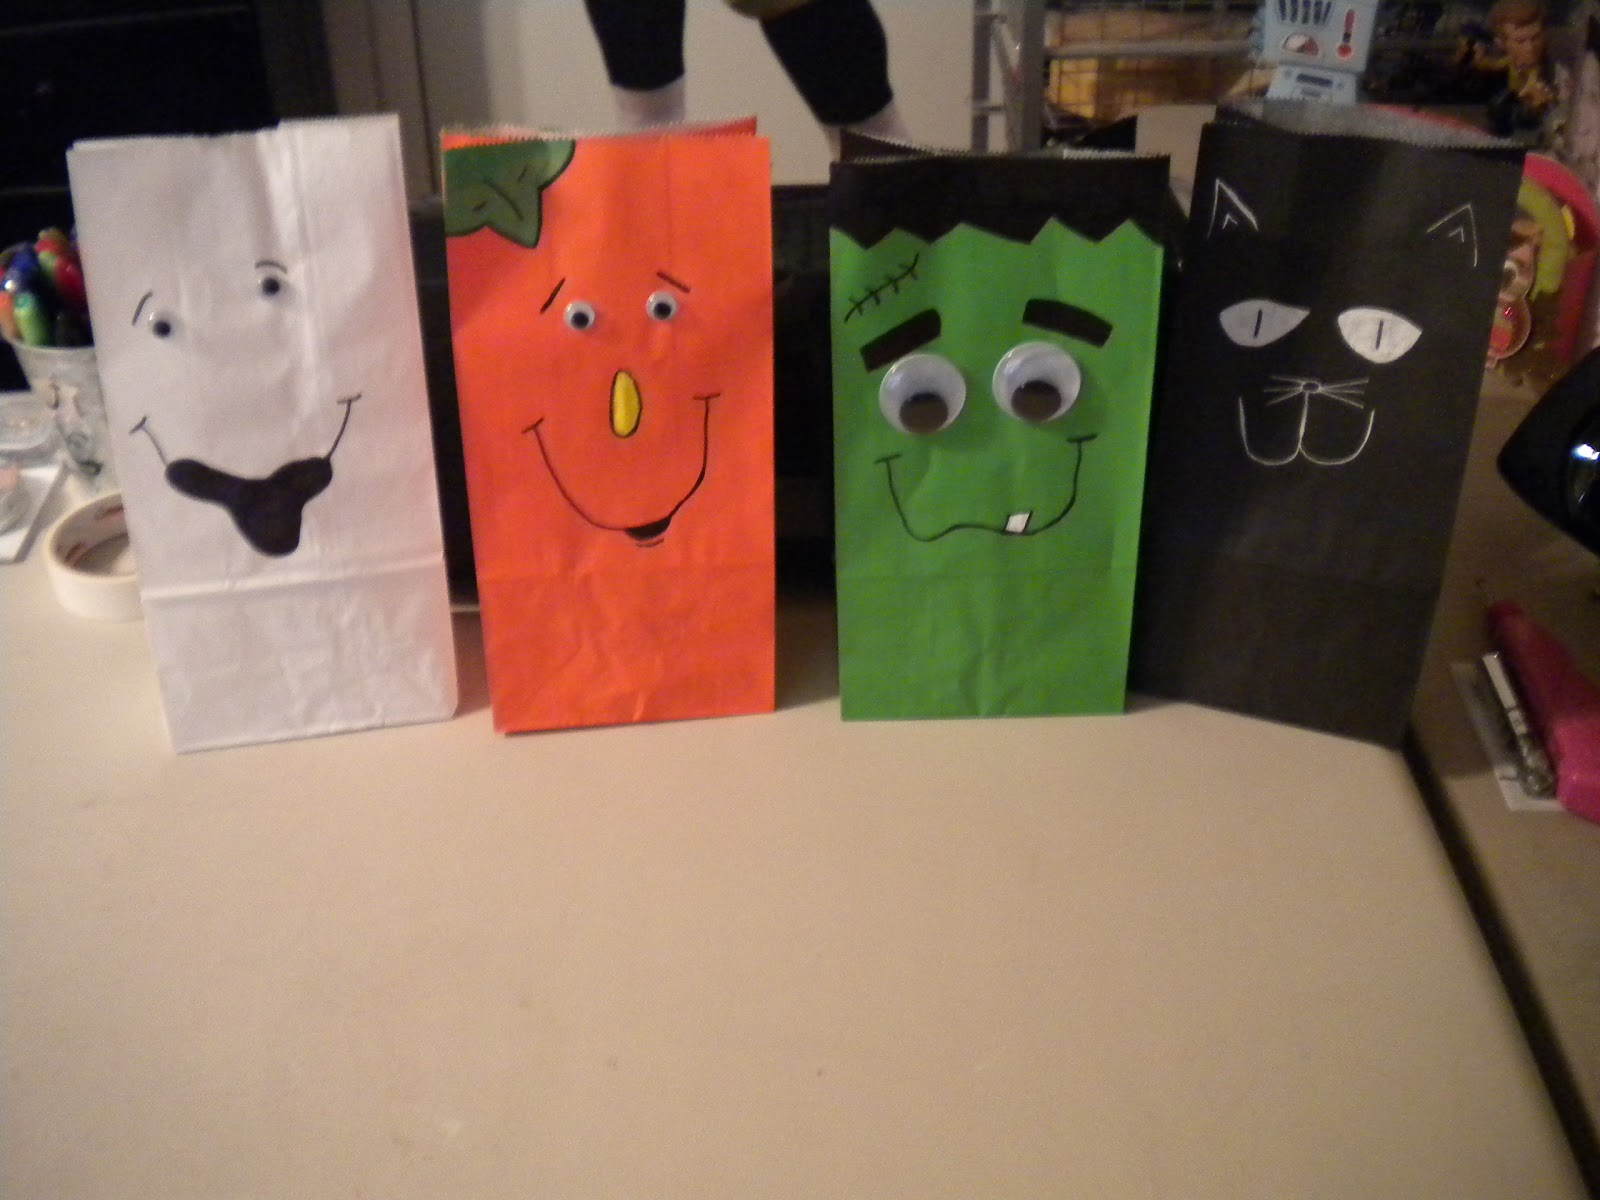 jean's crafty corner: day 17 of halloween projects: paper sack